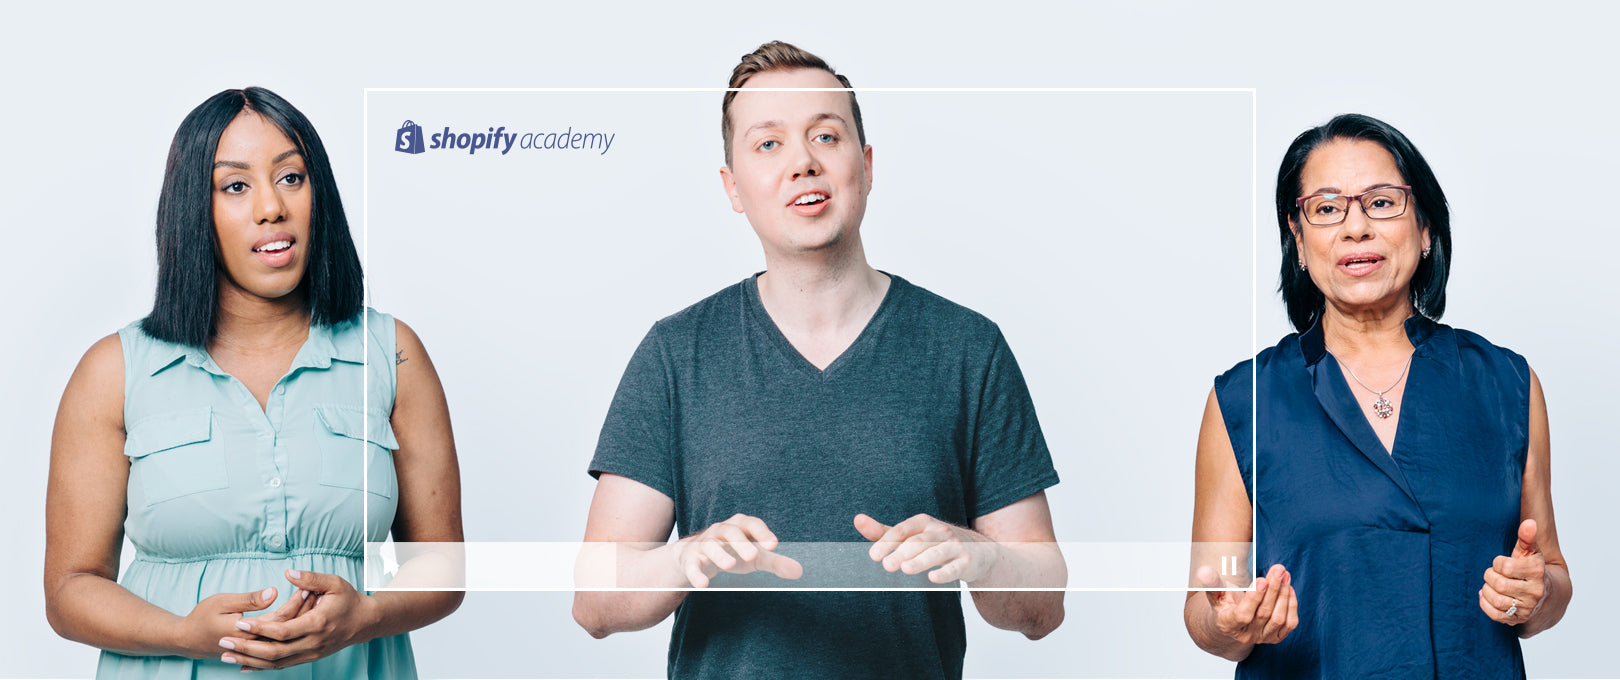 Introducing Shopify Academy: Free Training for Ecommerce and Retail Entrepreneurs